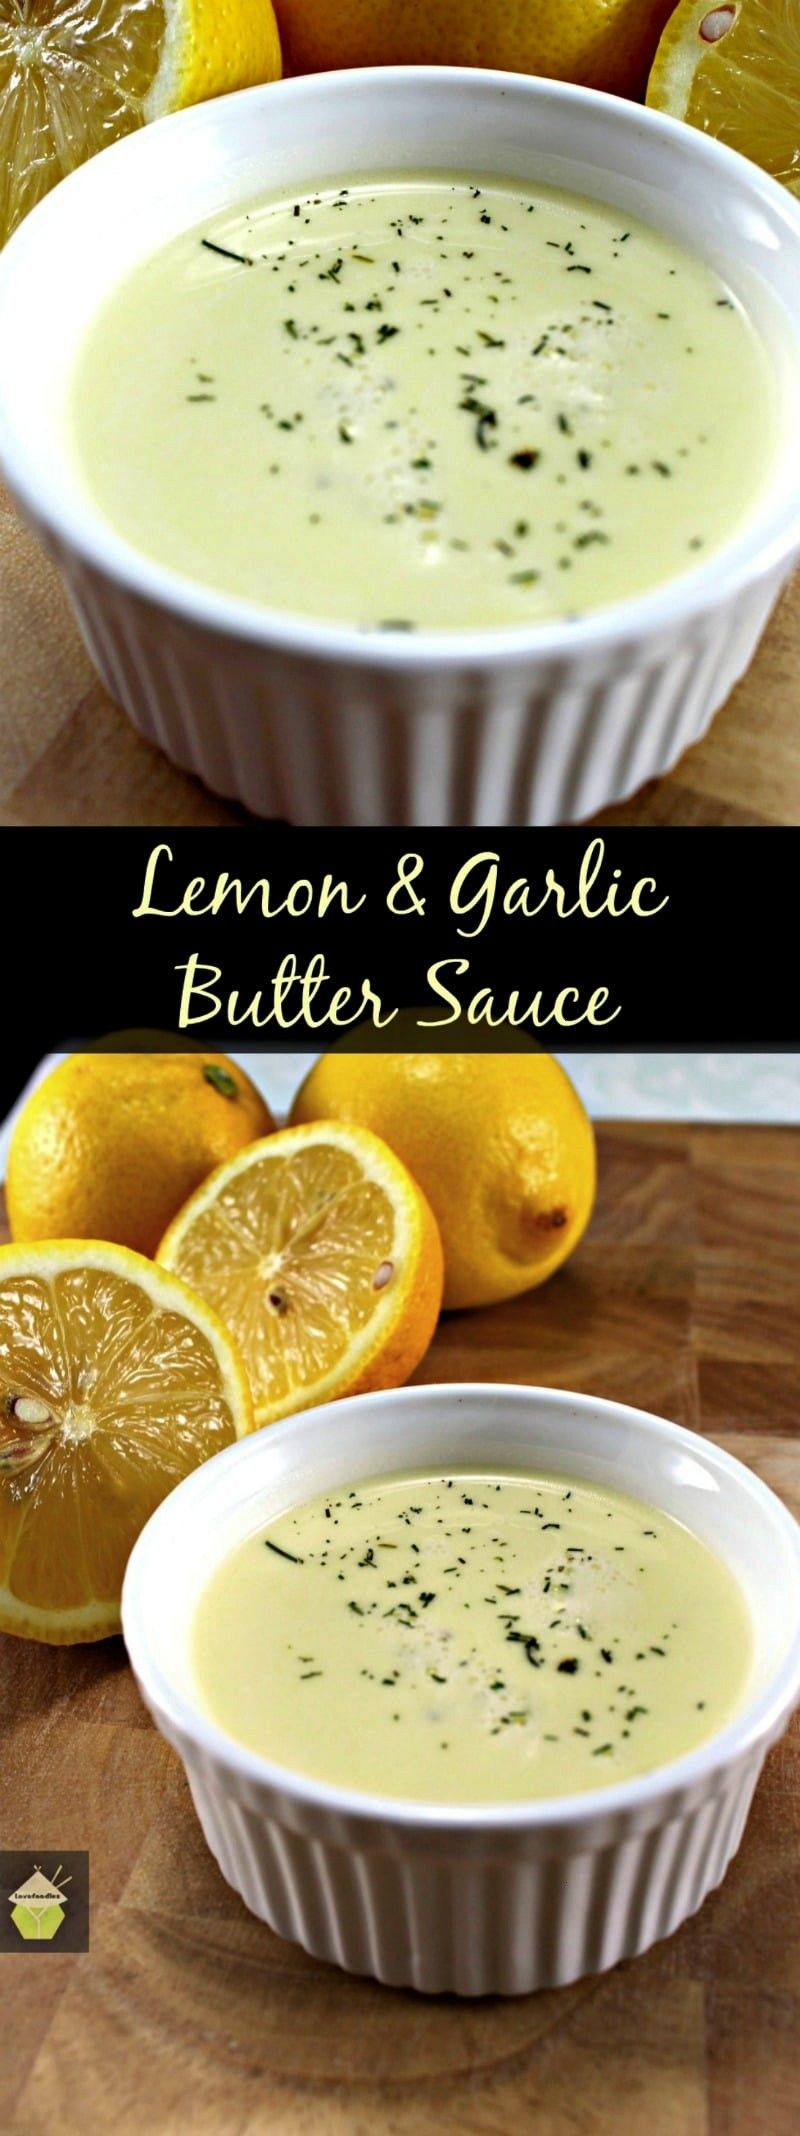 and Garlic Butter Sauce Lemon and Garlic Butter Sauce,Lemon and Garlic Butter Sauce, Skip the expe